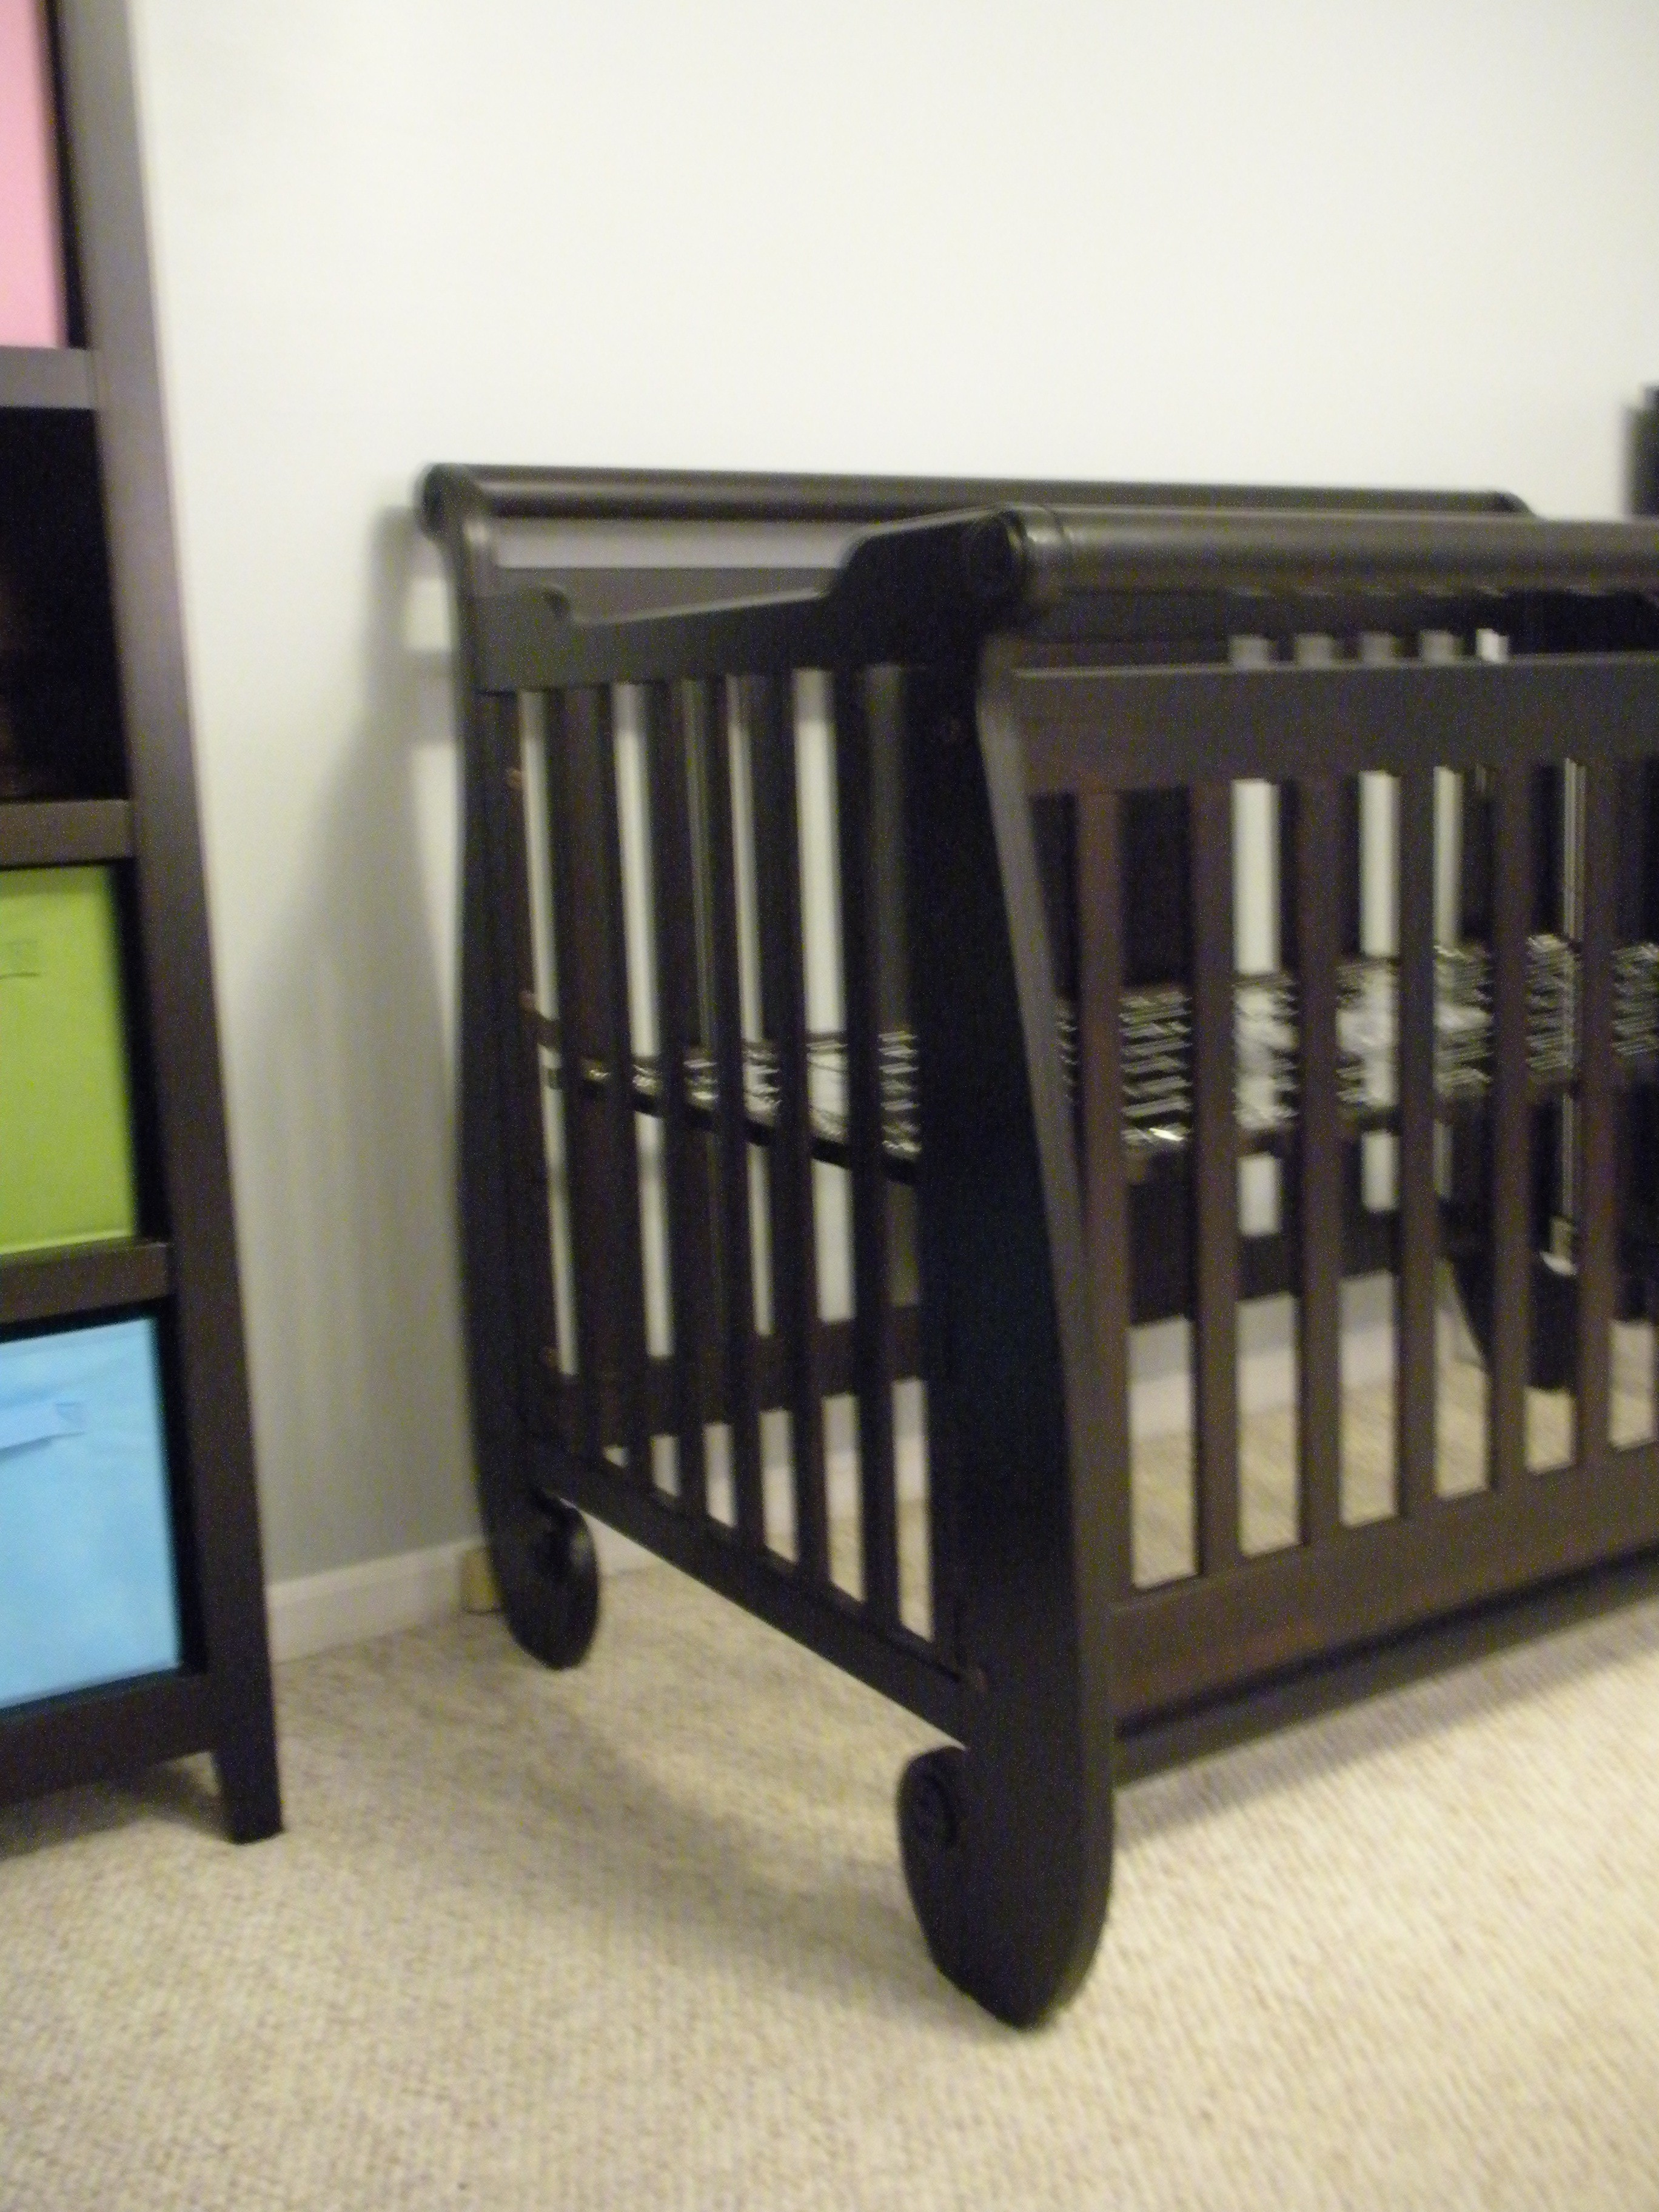 camden cribs manual side in instructions the e s convertible morgan silor dream crib best baby